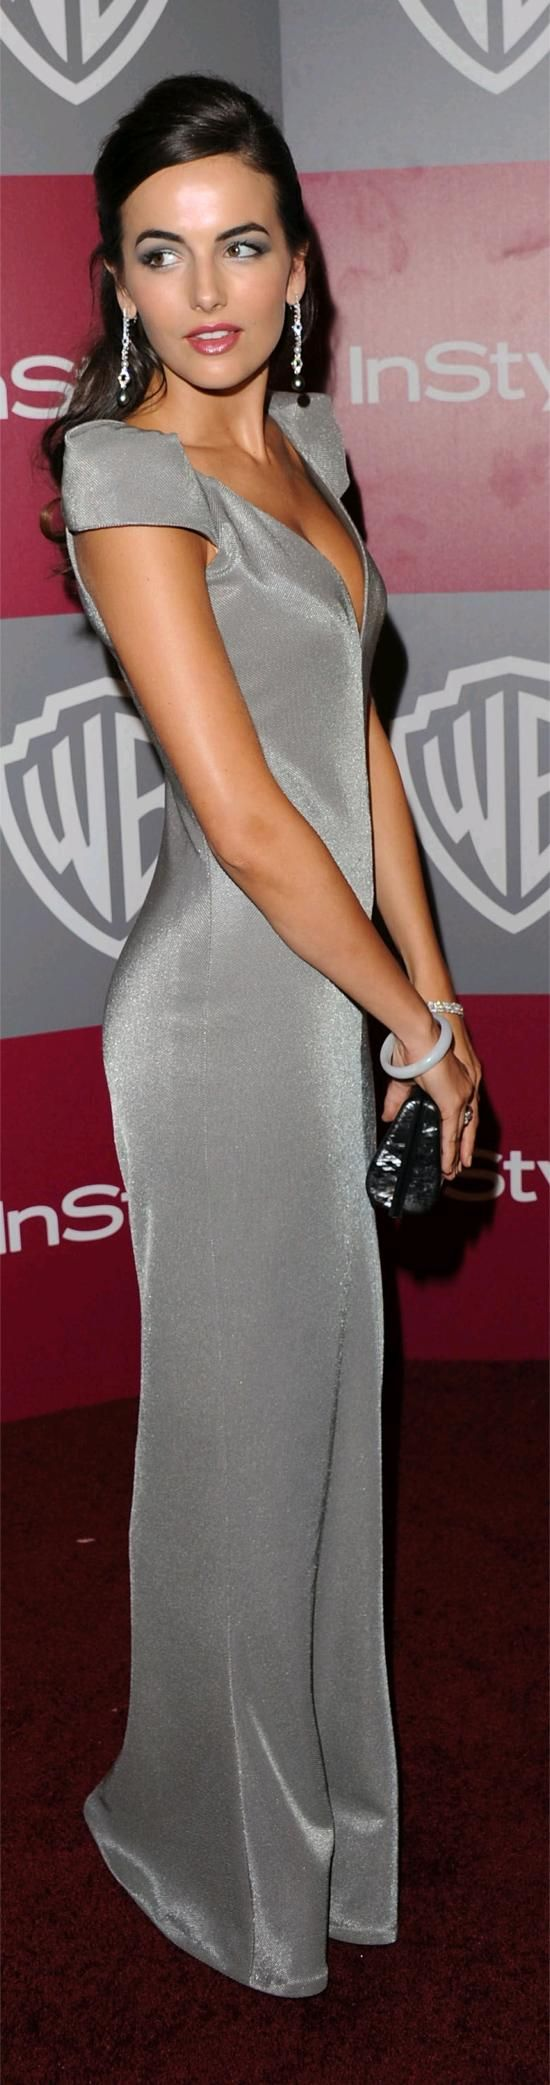 Camilla Belle: silver/ gray dress